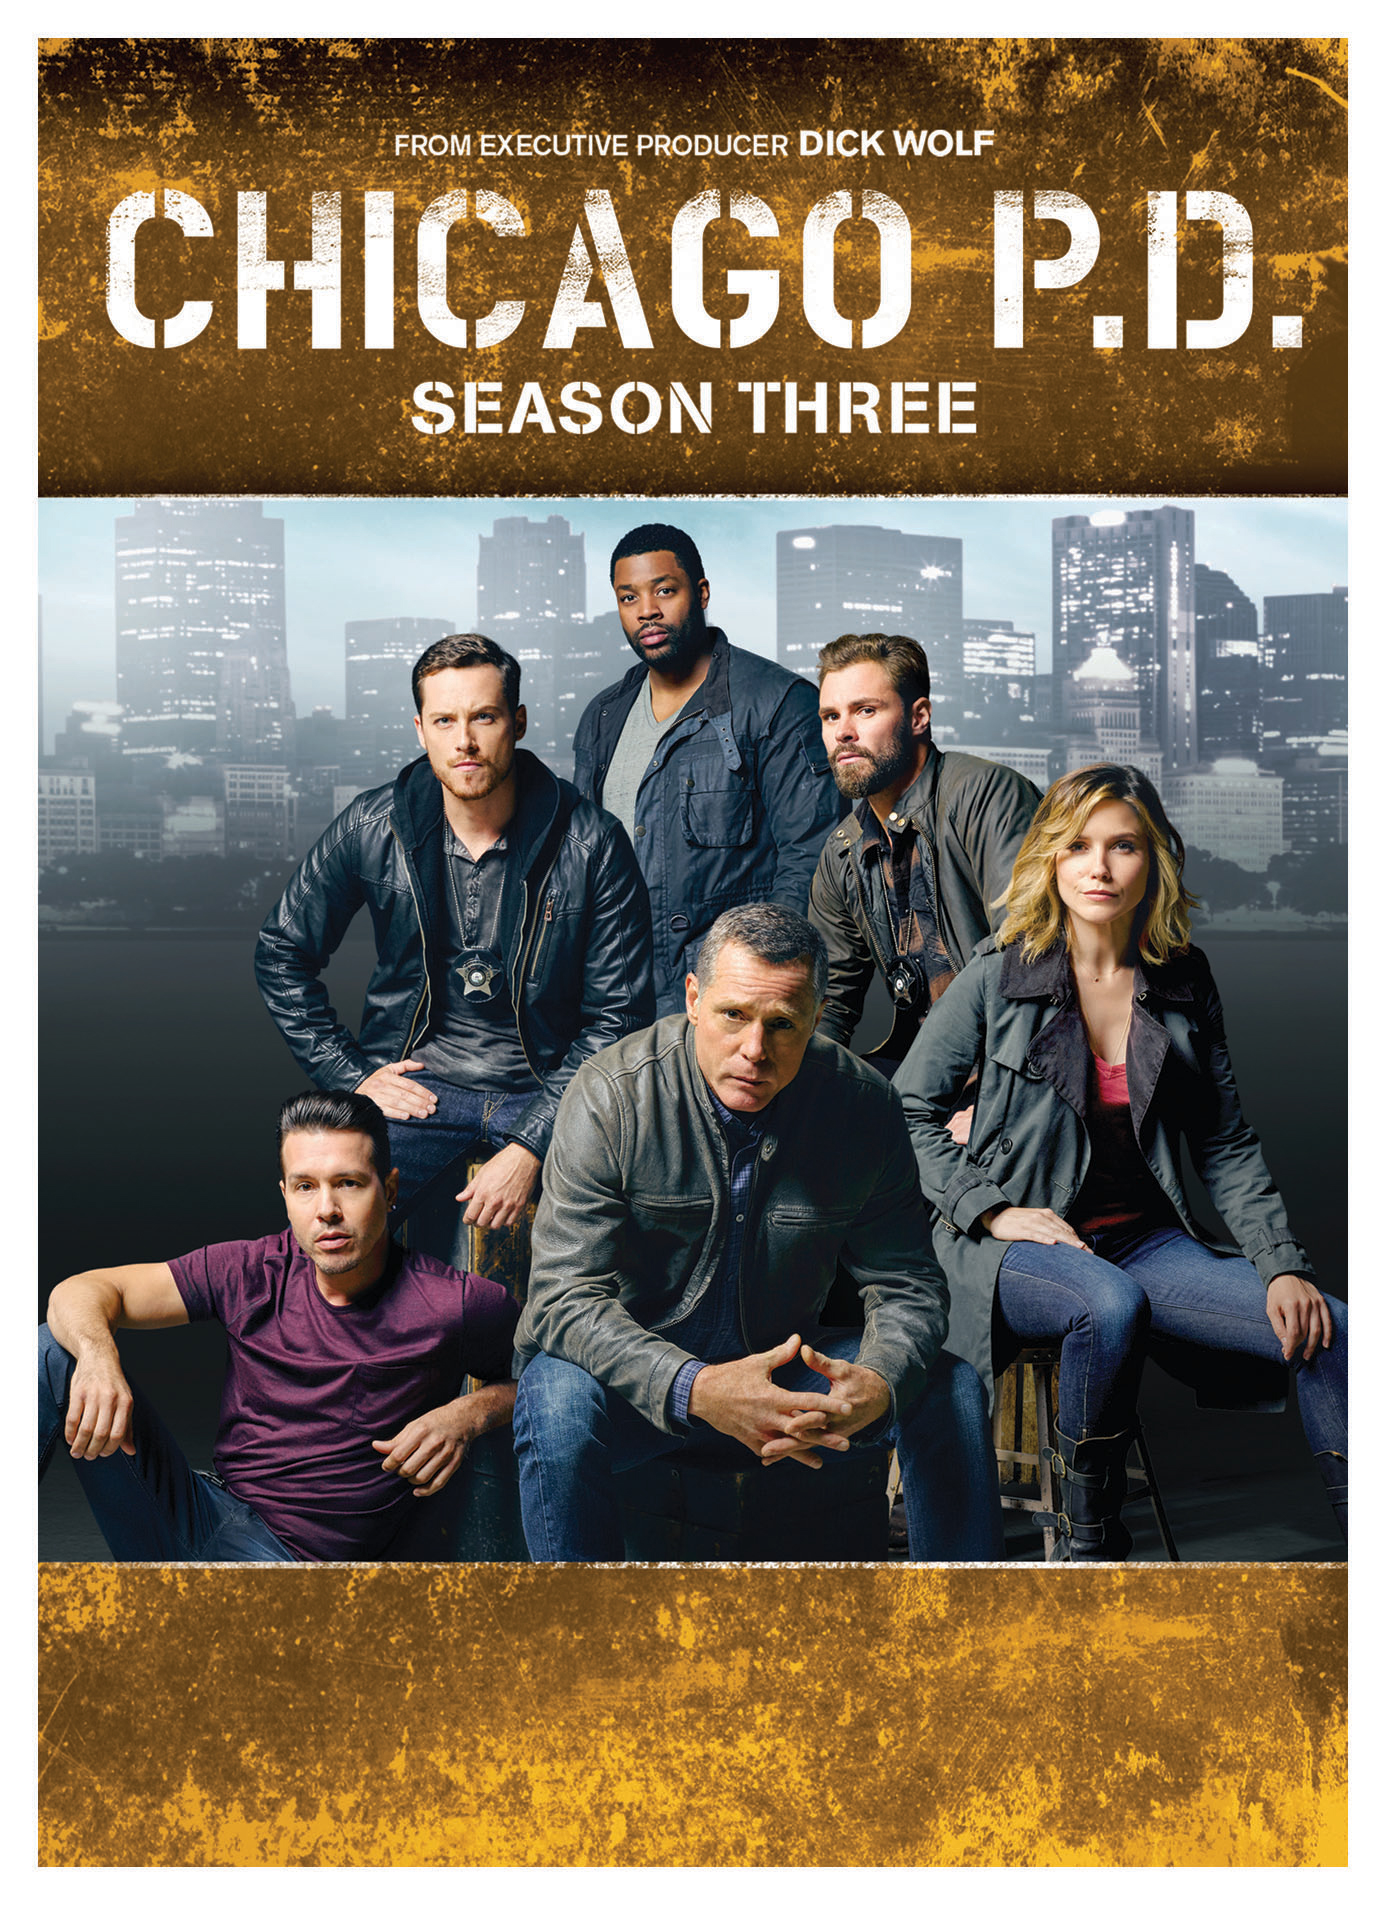 Return to ground zero in the fight against Chicago crime in all 23 episodes of this critically acclaimed drama from Primetime Emmy® Award winner Dick Wolf ( Law & Order ). In Season Three, Hank Voight's (Jason Beghe) intelligence unit is in the final stretch of taking down a powerful kingpin when one of his detectives is severely beaten and kidnapped. In a race against time, Voight makes the difficult decision to bring back one of the disgraced former members of his unit. Ride along with the 21st, in the series' most provocative and chilling season yet, back-to-back and uninterrupted.